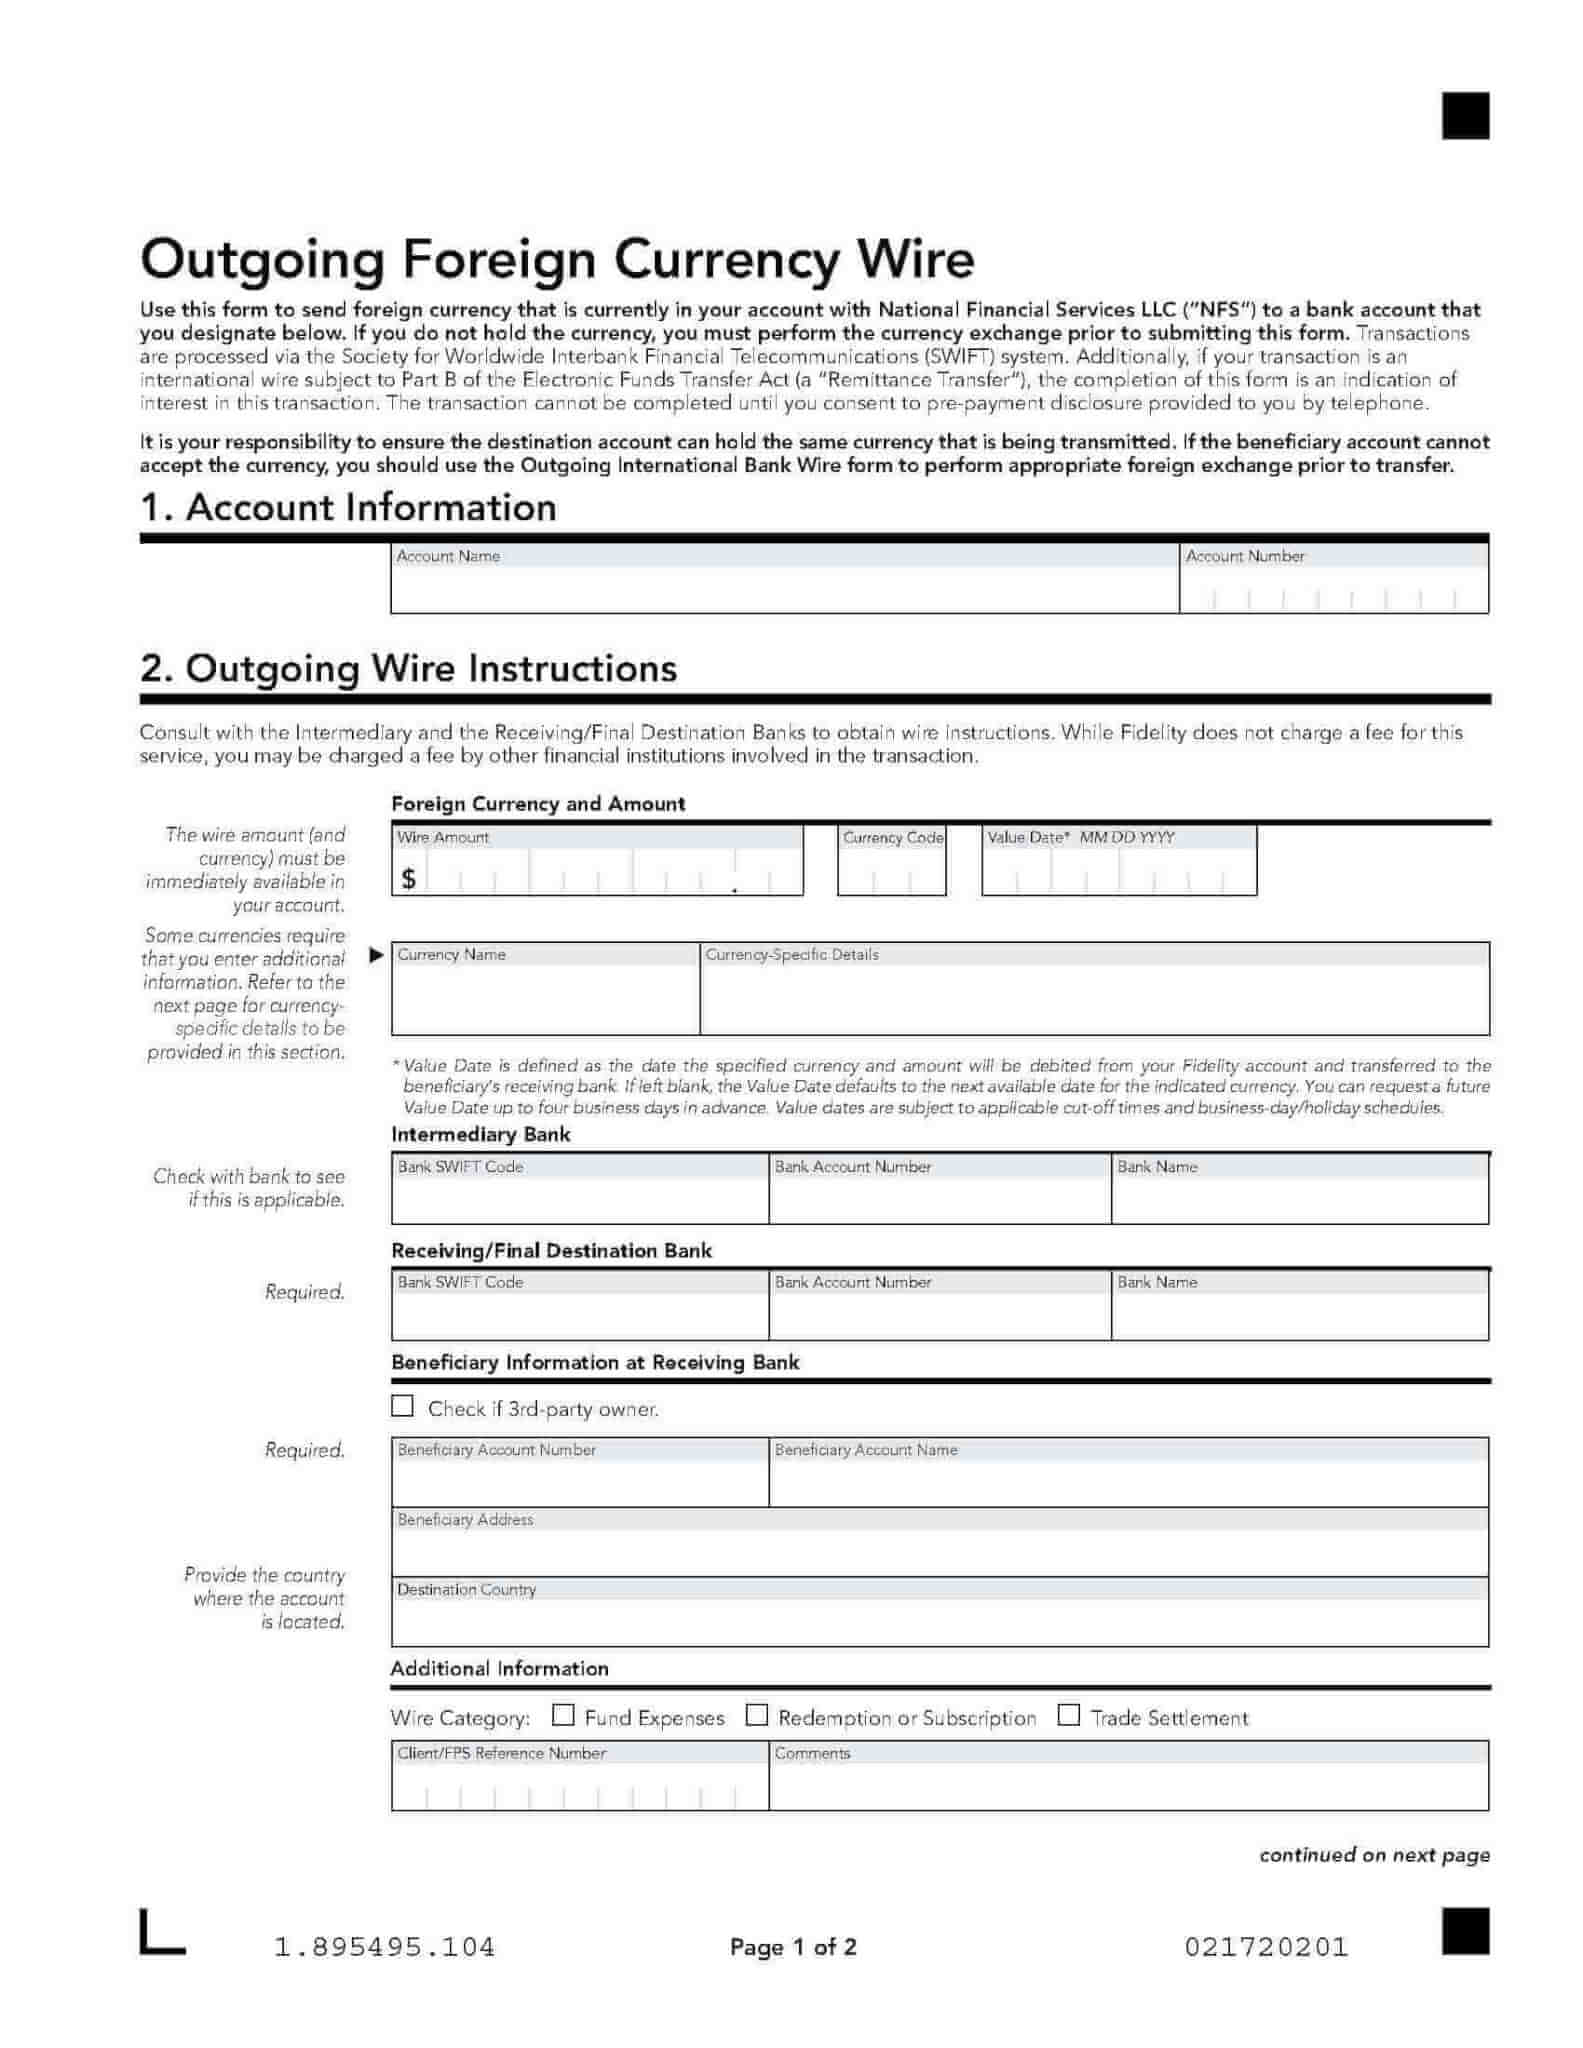 Outgoing currency wire form